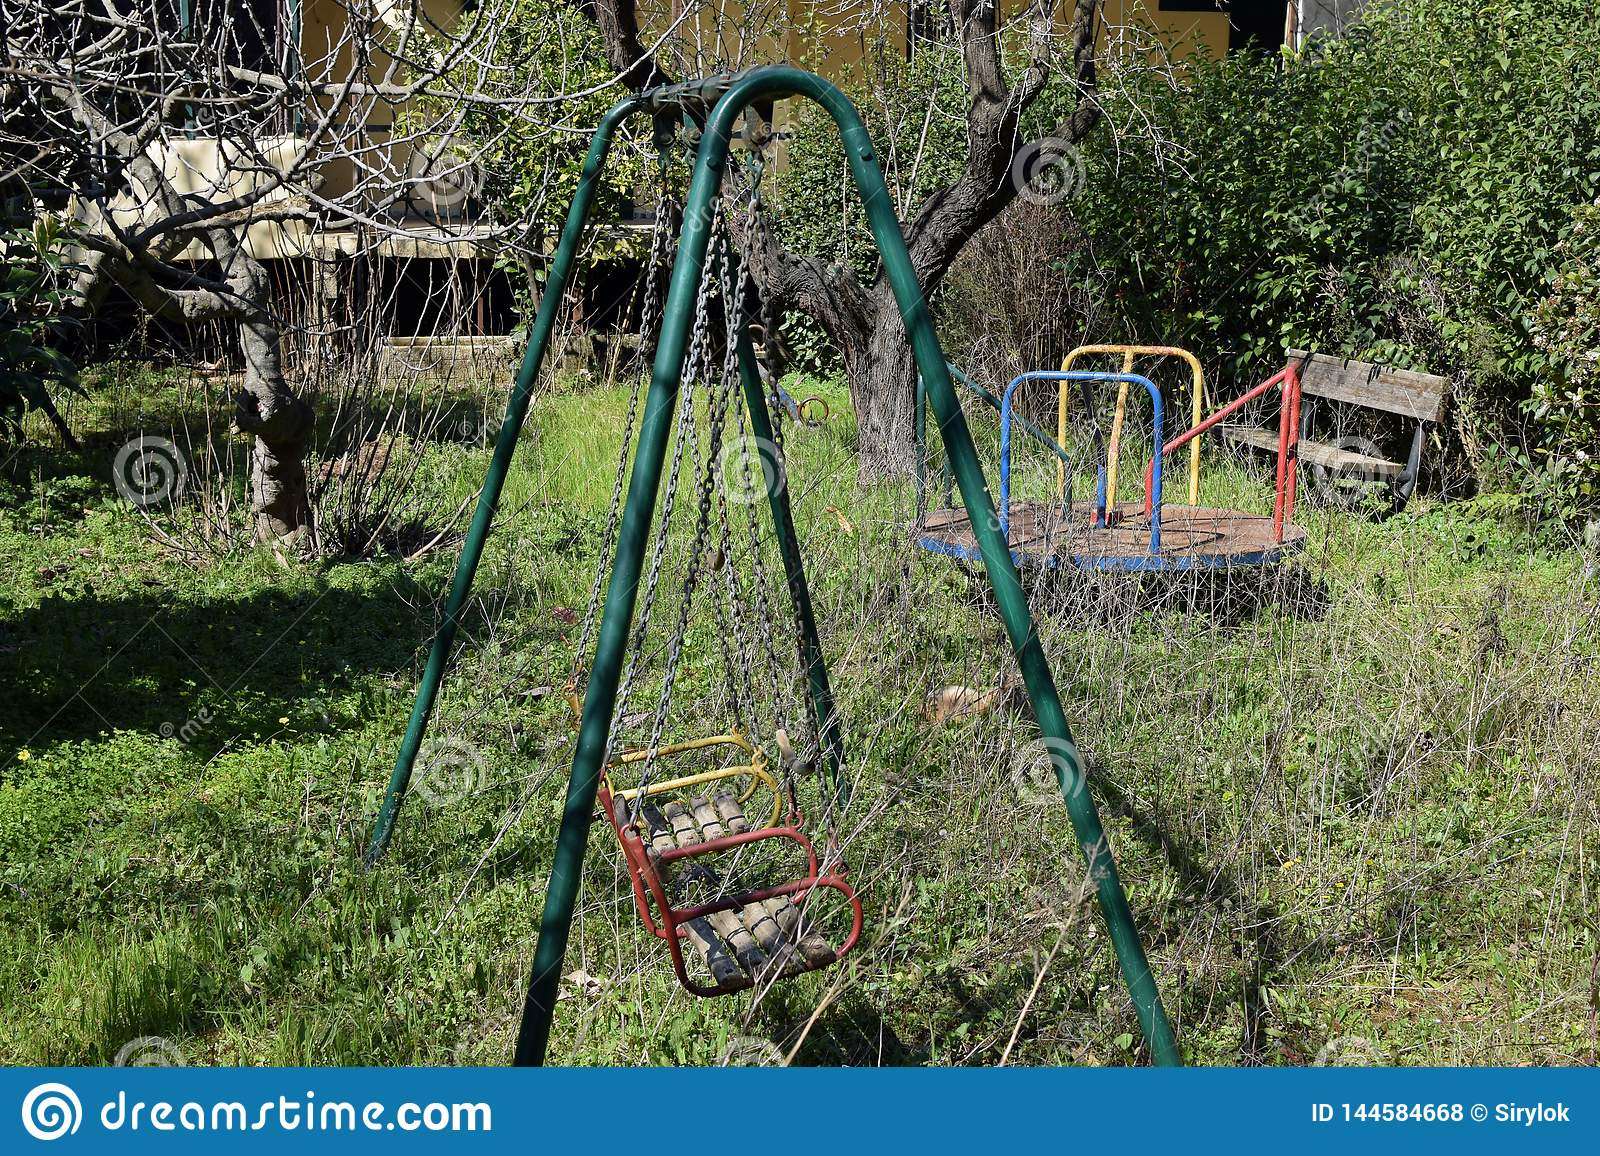 Abandoned Playground Old Swings And Merry Go Round Stock Photo Image Of Plants Decay 144584668